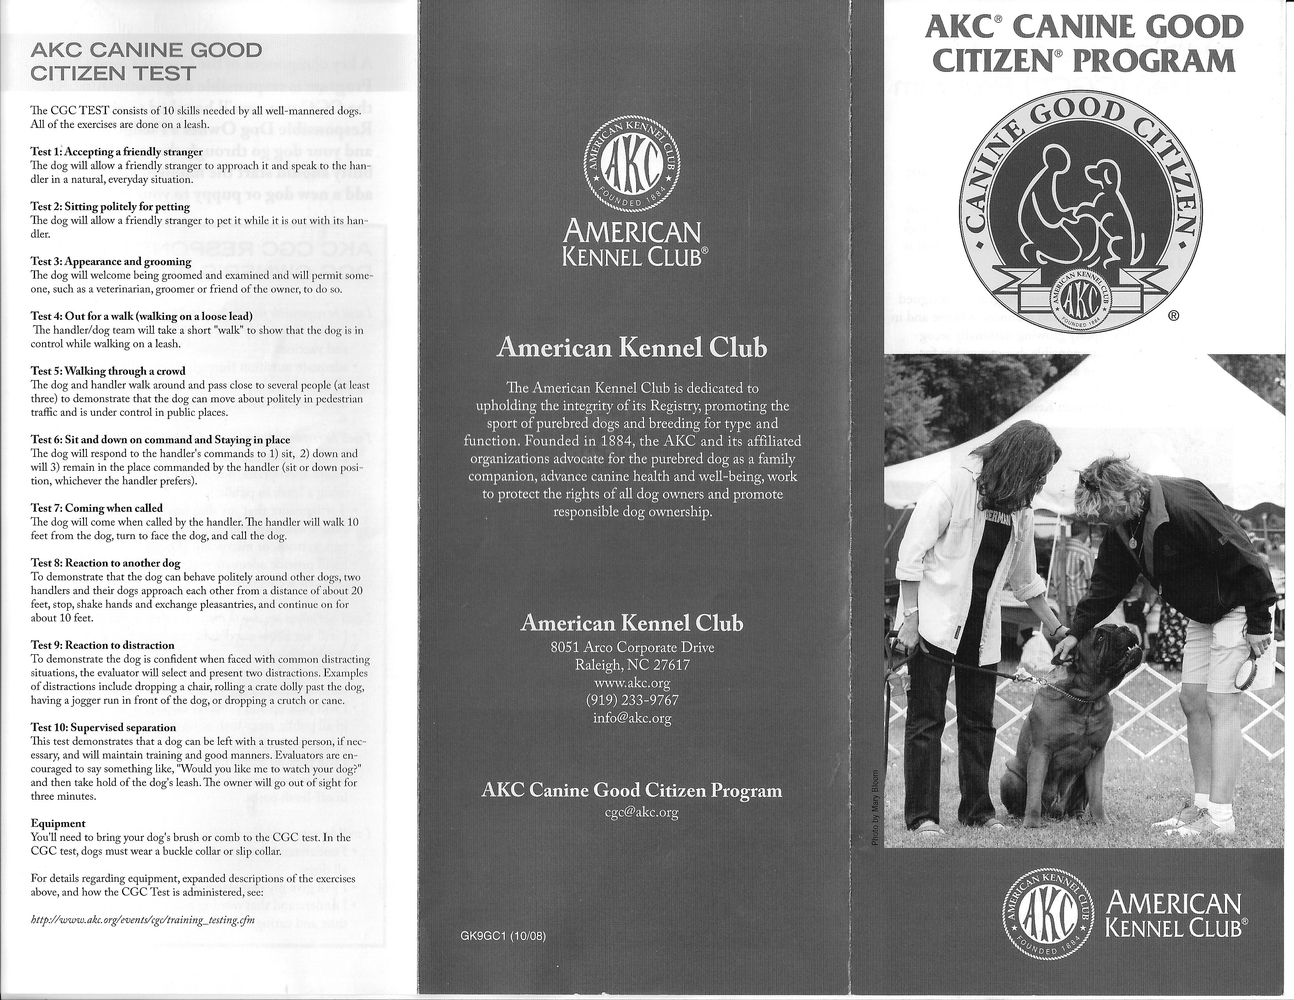 AKC Canine Good Citizen Program.png